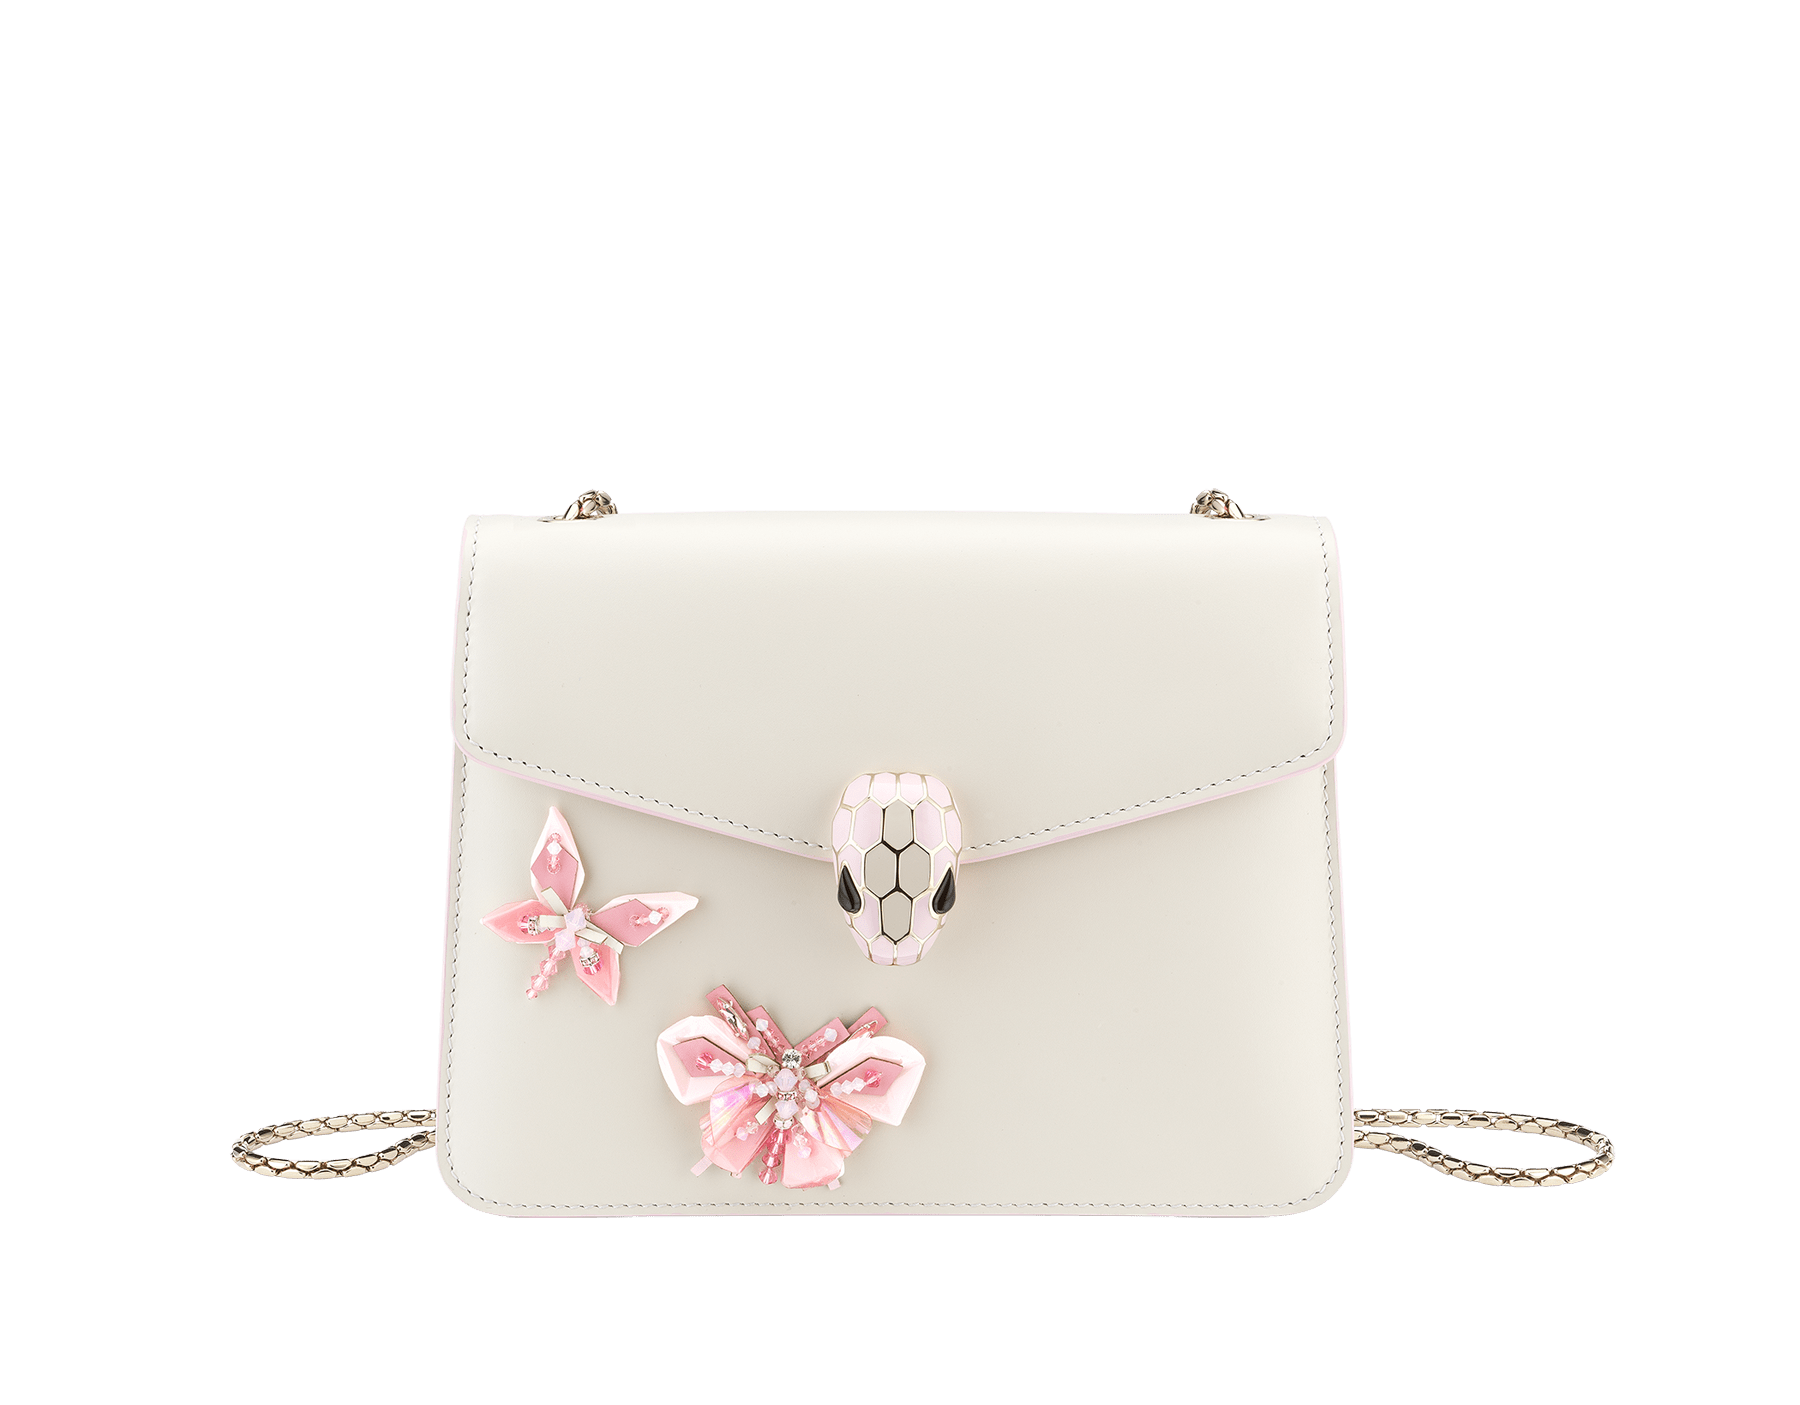 """Serpenti Forever"" crossbody bag in white agate calf leather with two rosa di francia butterflies embroidered. Iconic snakehead closure in light gold plated brass enriched with rosa di francia and white agate enamel and black onyx eyes. 289243 image 1"